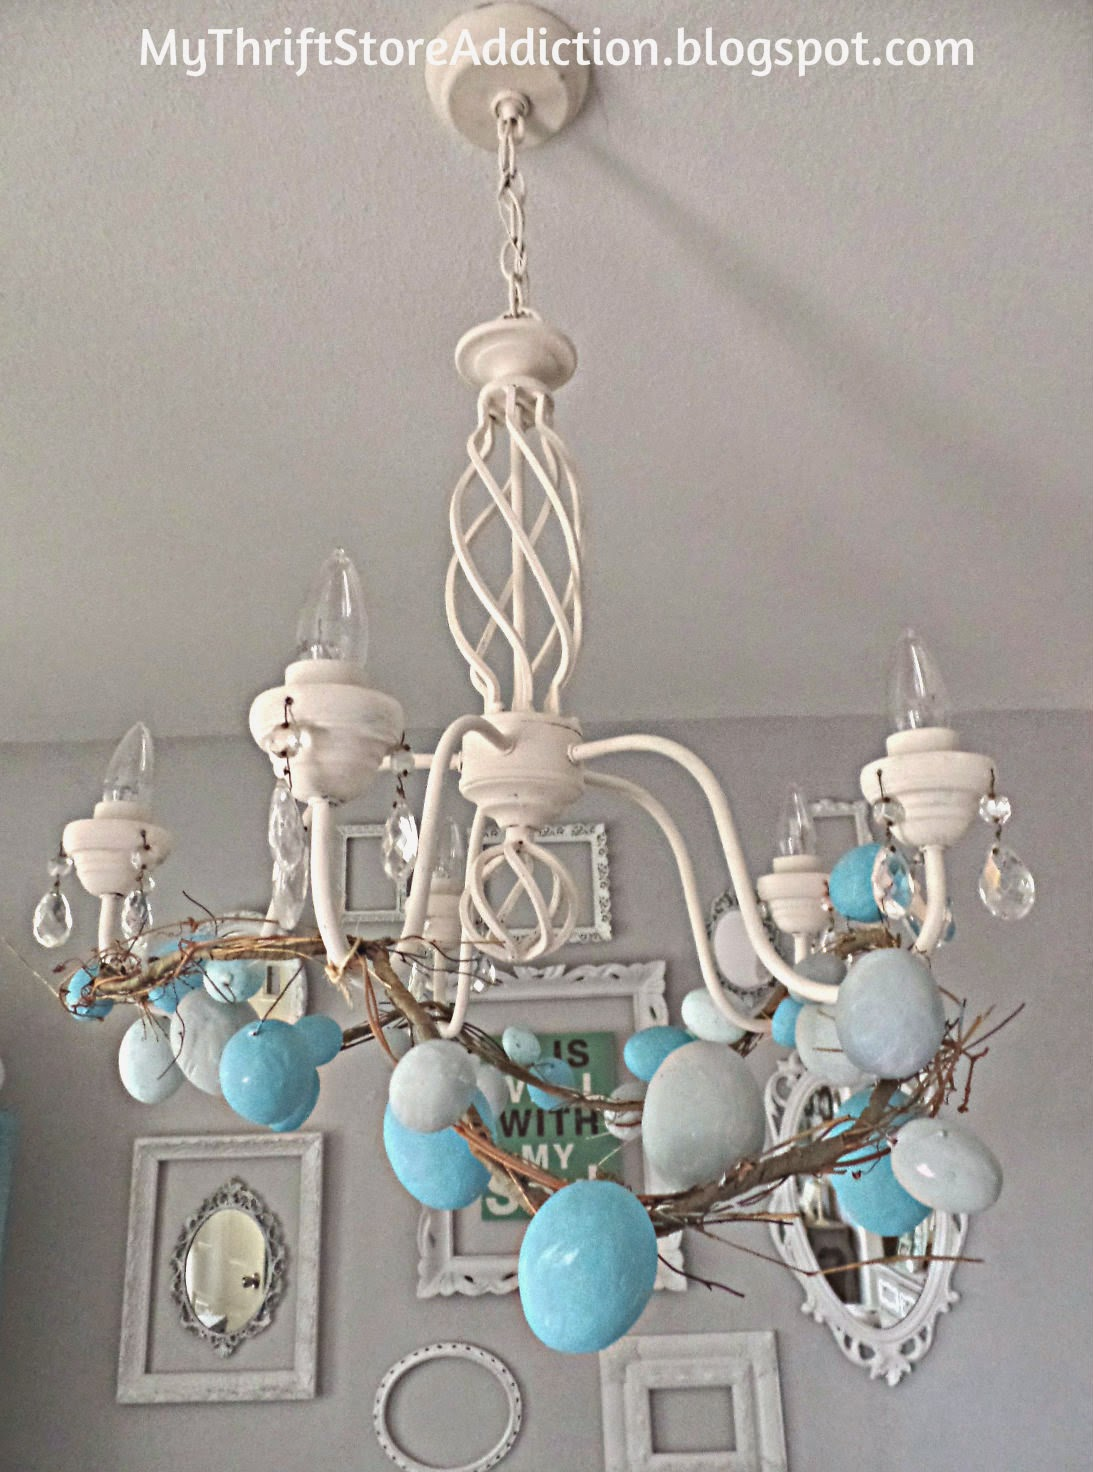 Upcycled chalk painted egg garland